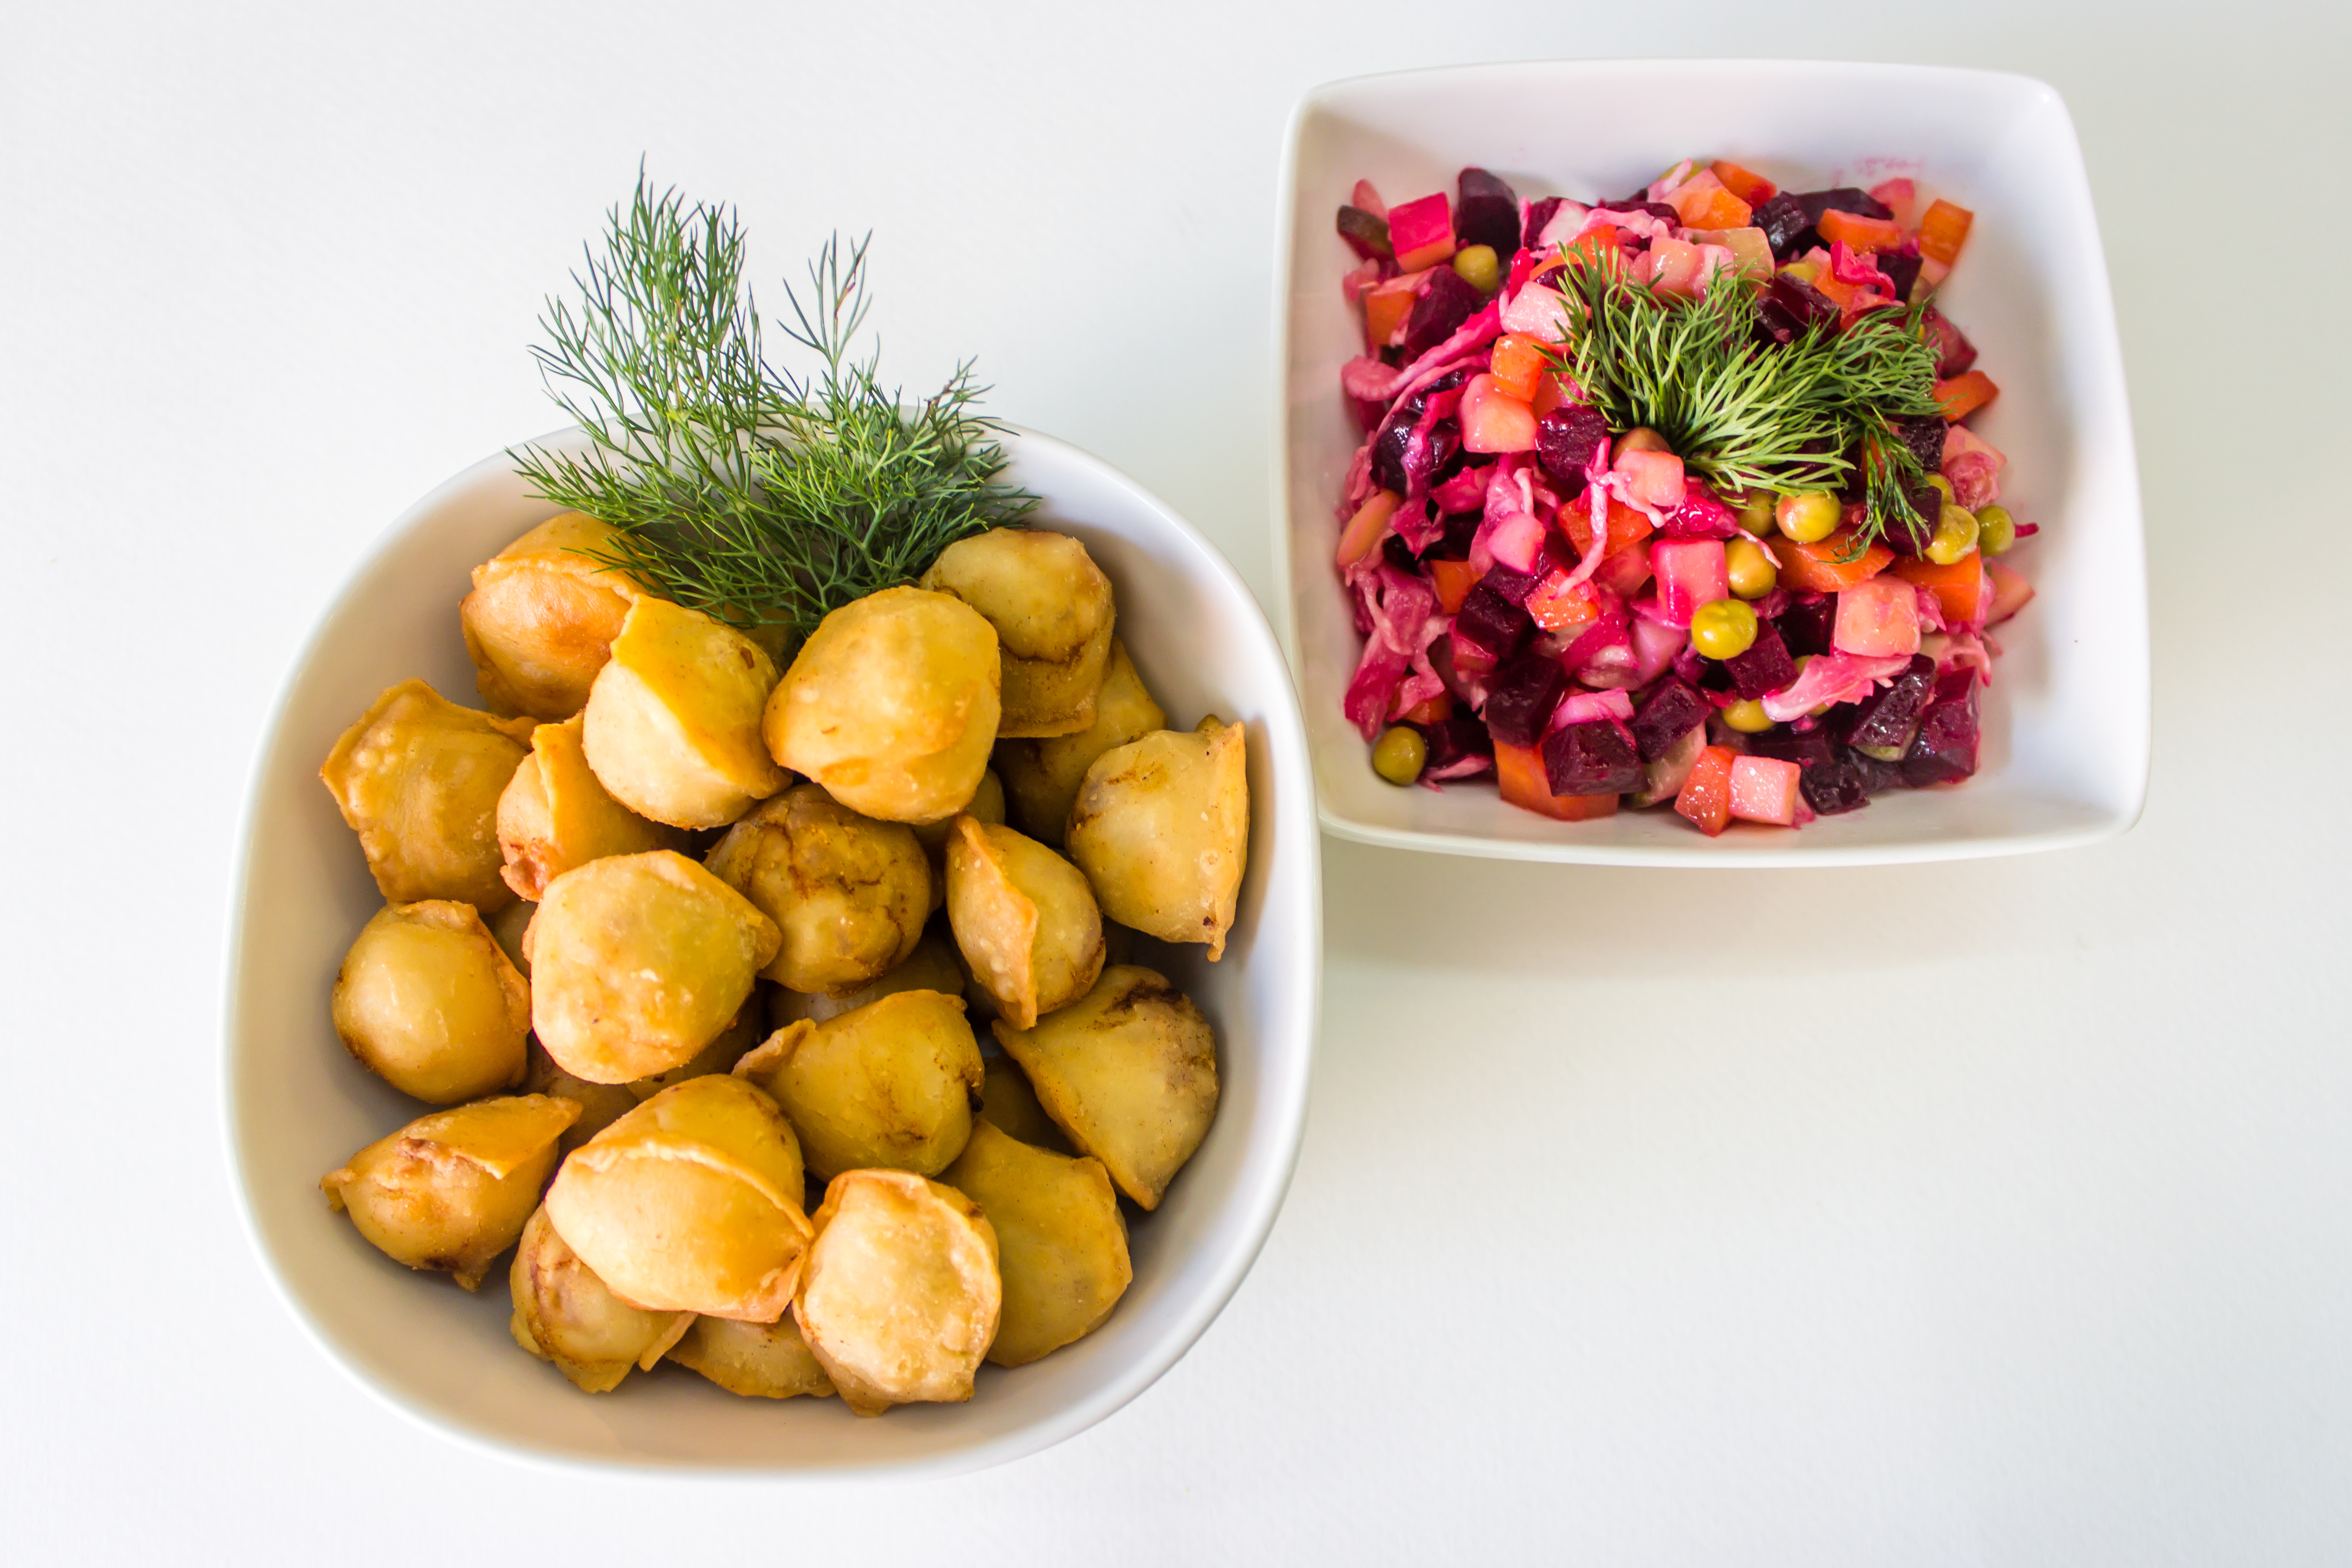 Fried dumplings + beetroot salad (Vinegret)